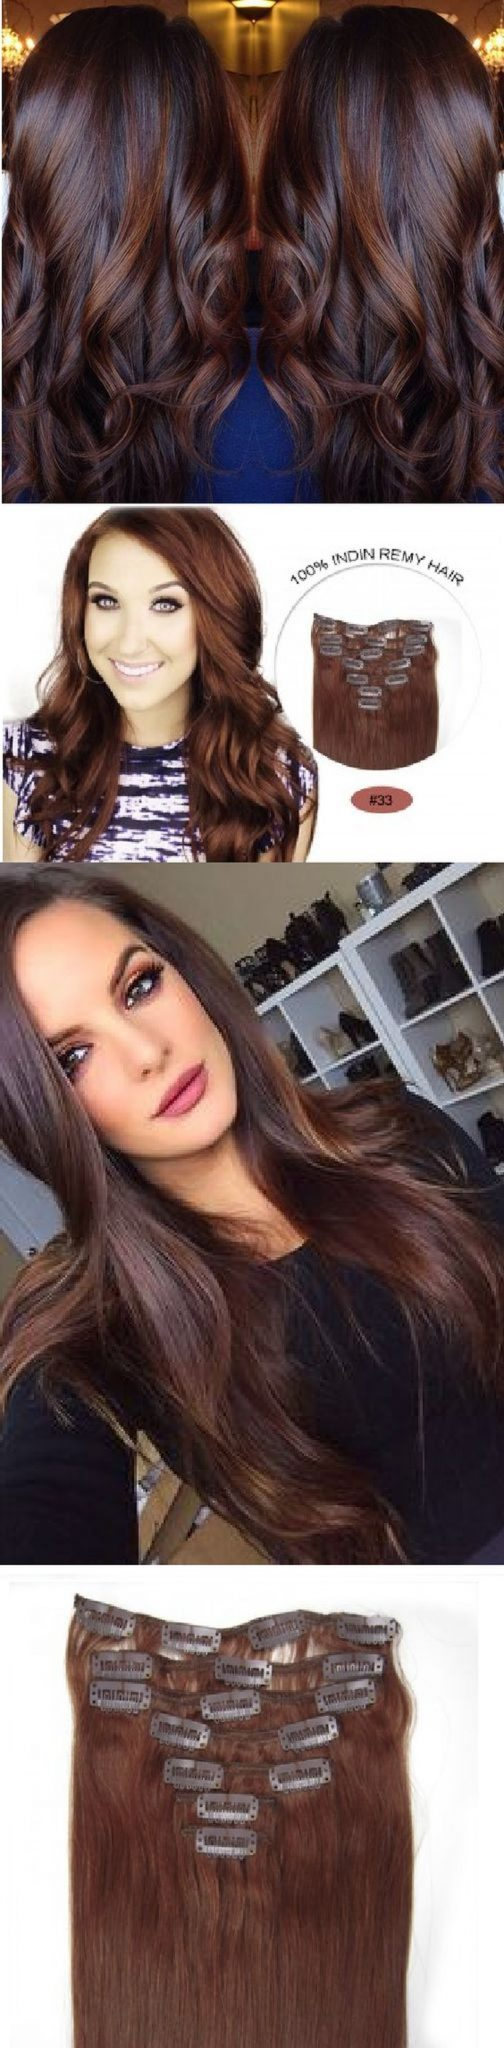 Stunning fall hair colors ideas for brunettes 2017 8